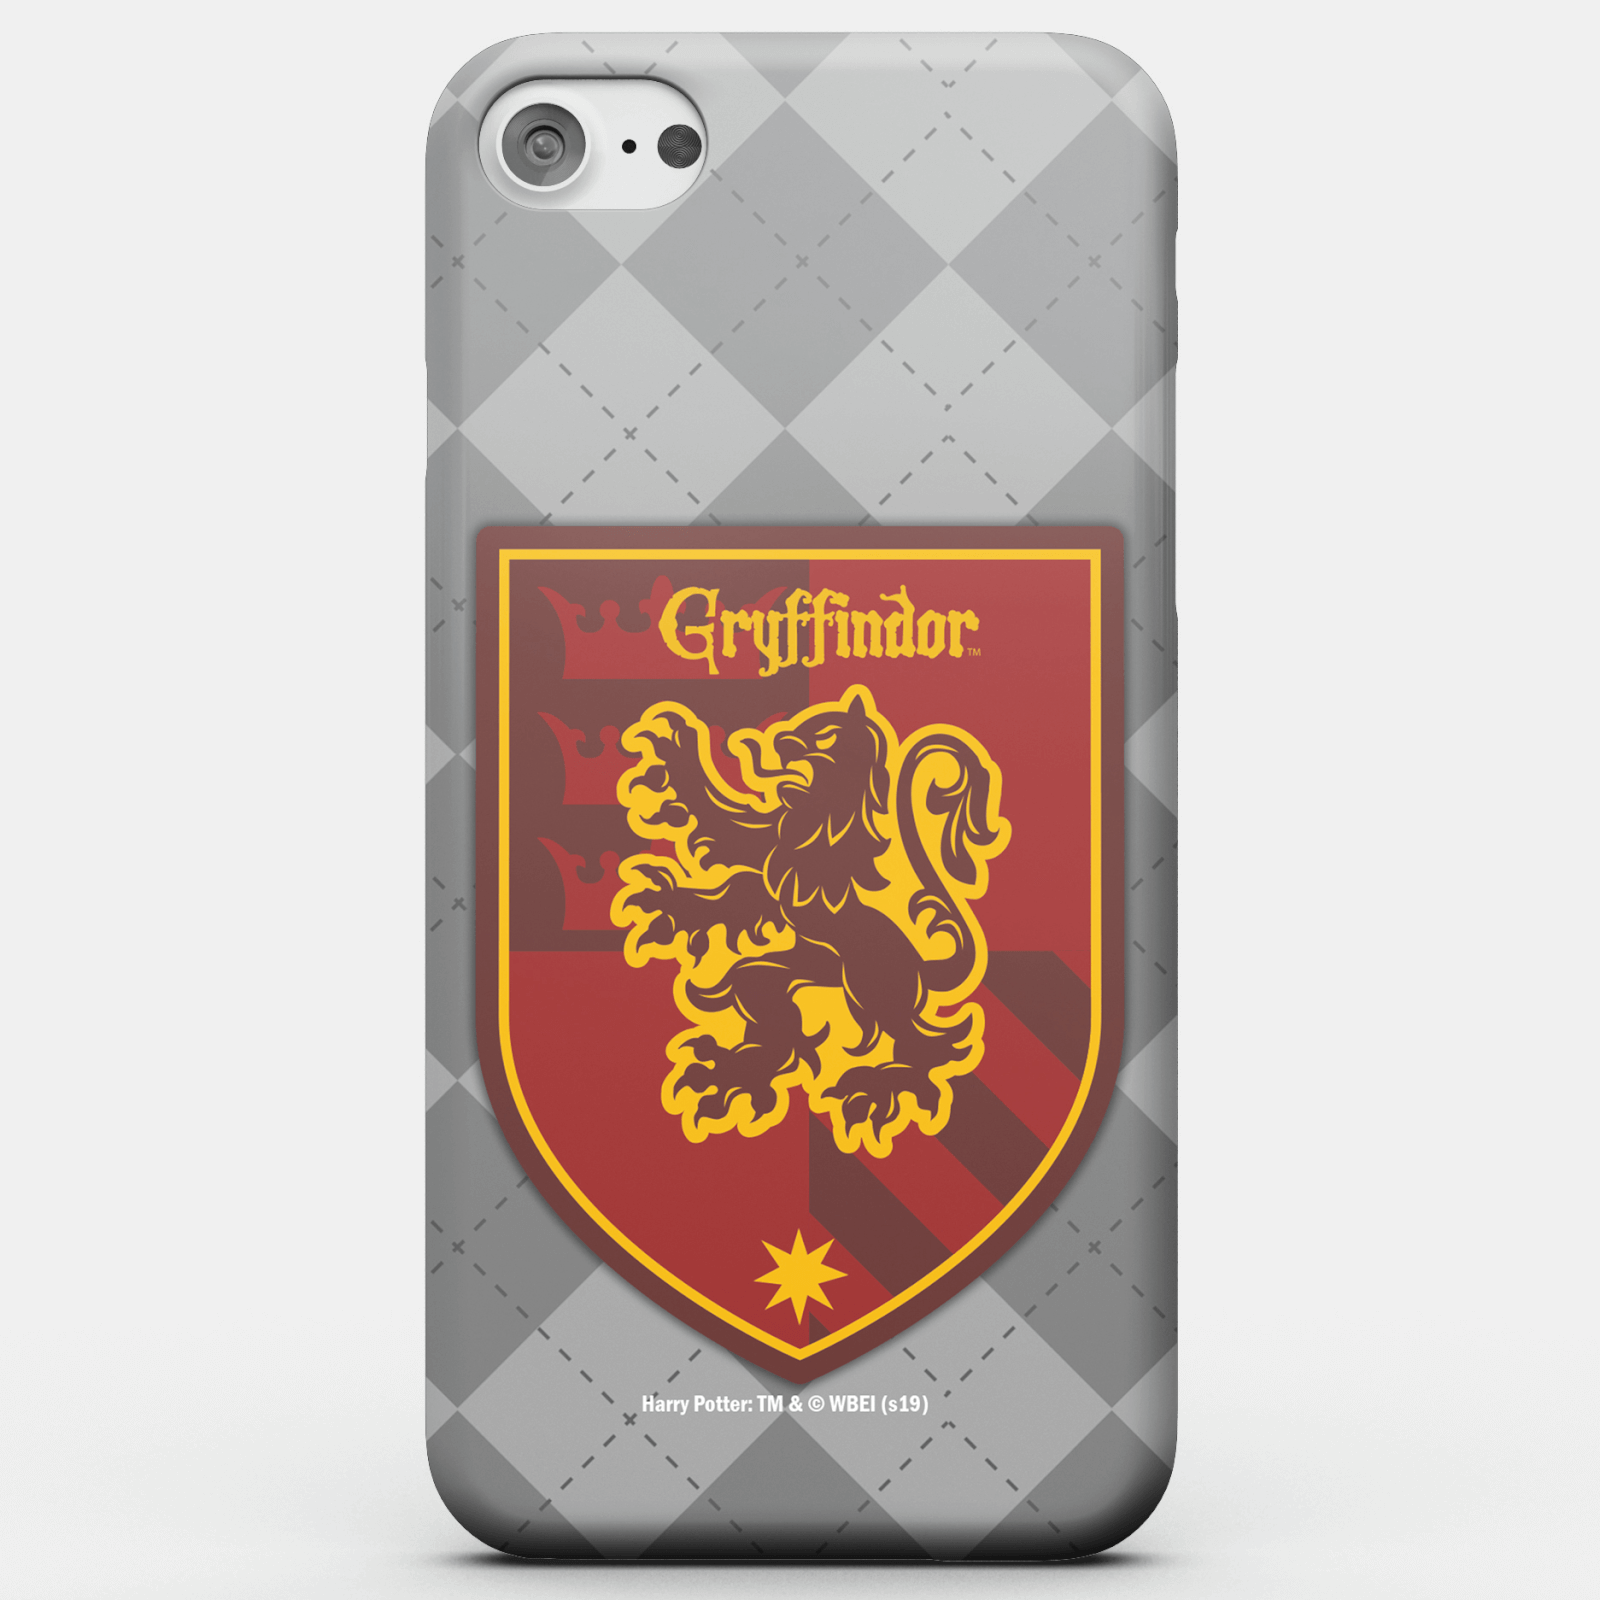 Harry Potter Phonecases Gryffindor Crest Phone Case for iPhone and Android - Samsung S7 - Carcasa rígida - Mate de Harry Potter